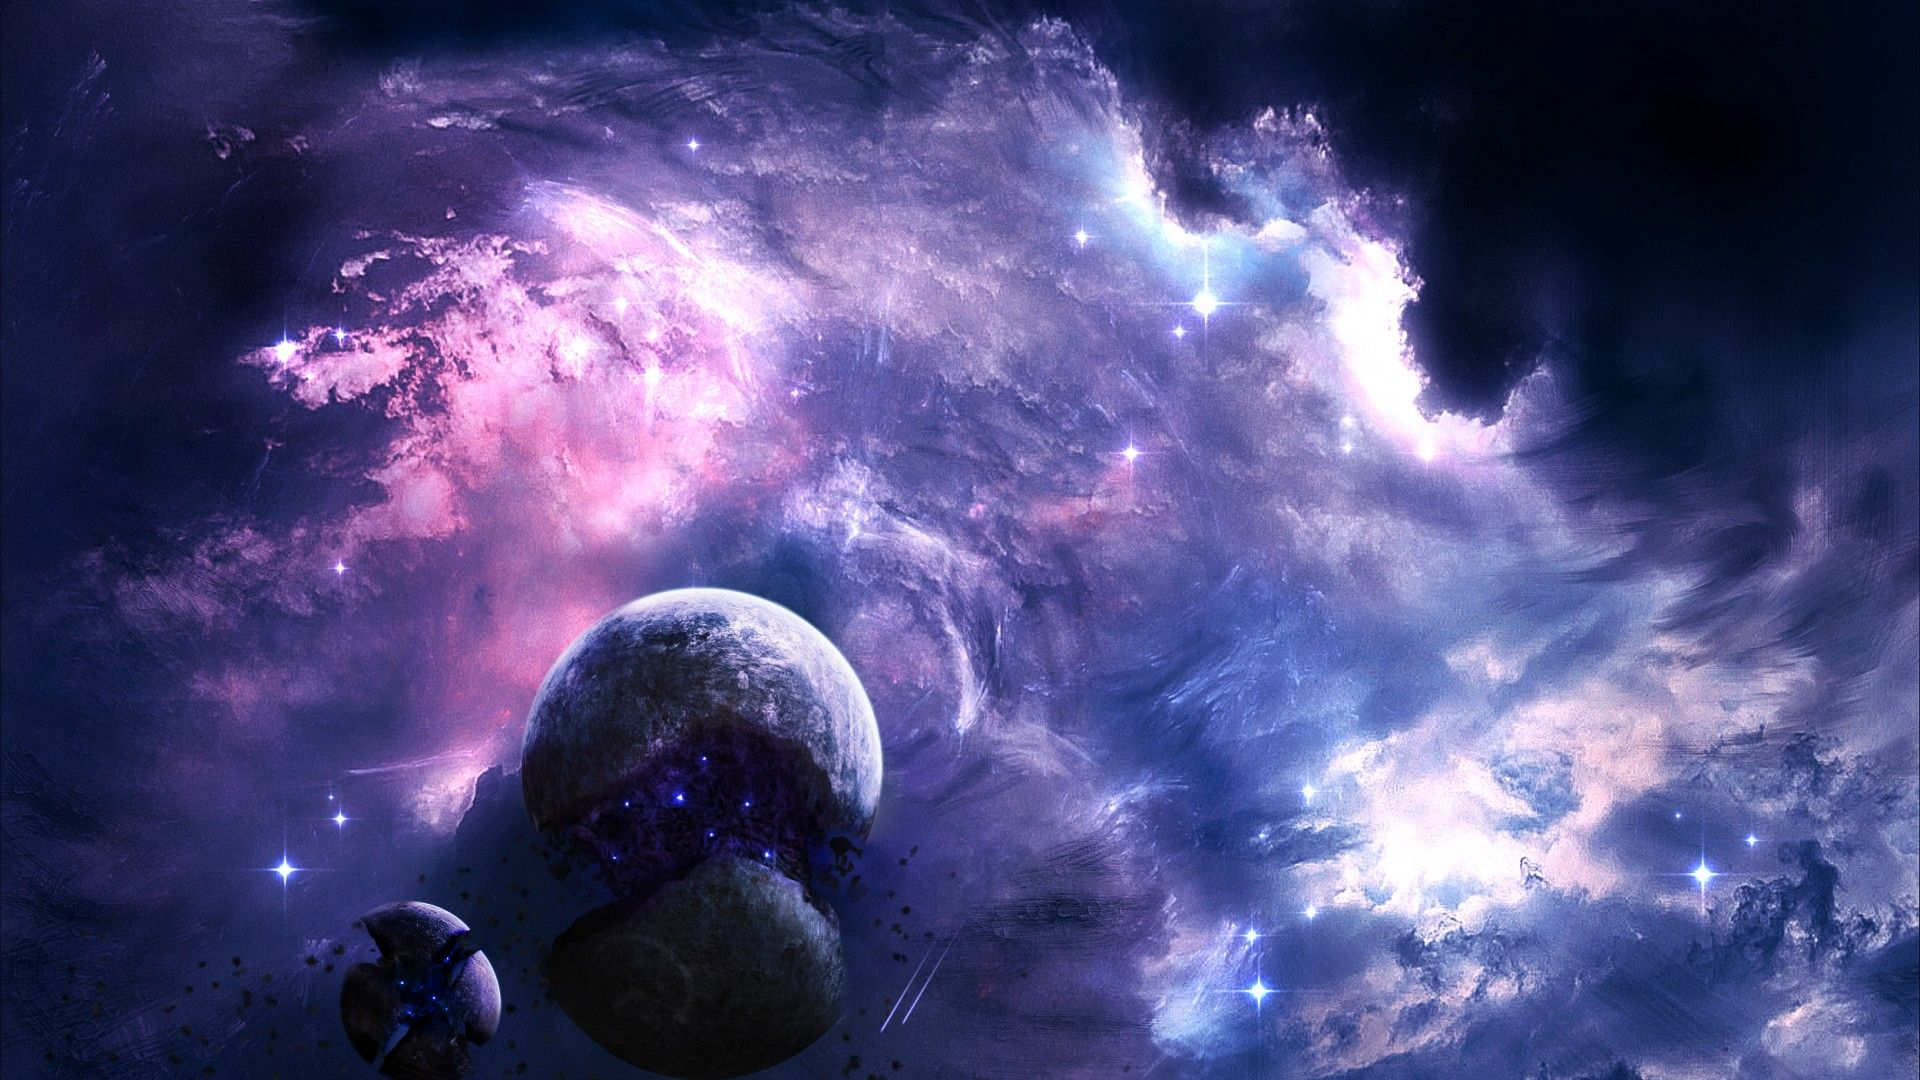 Outer Space screen wallpaper